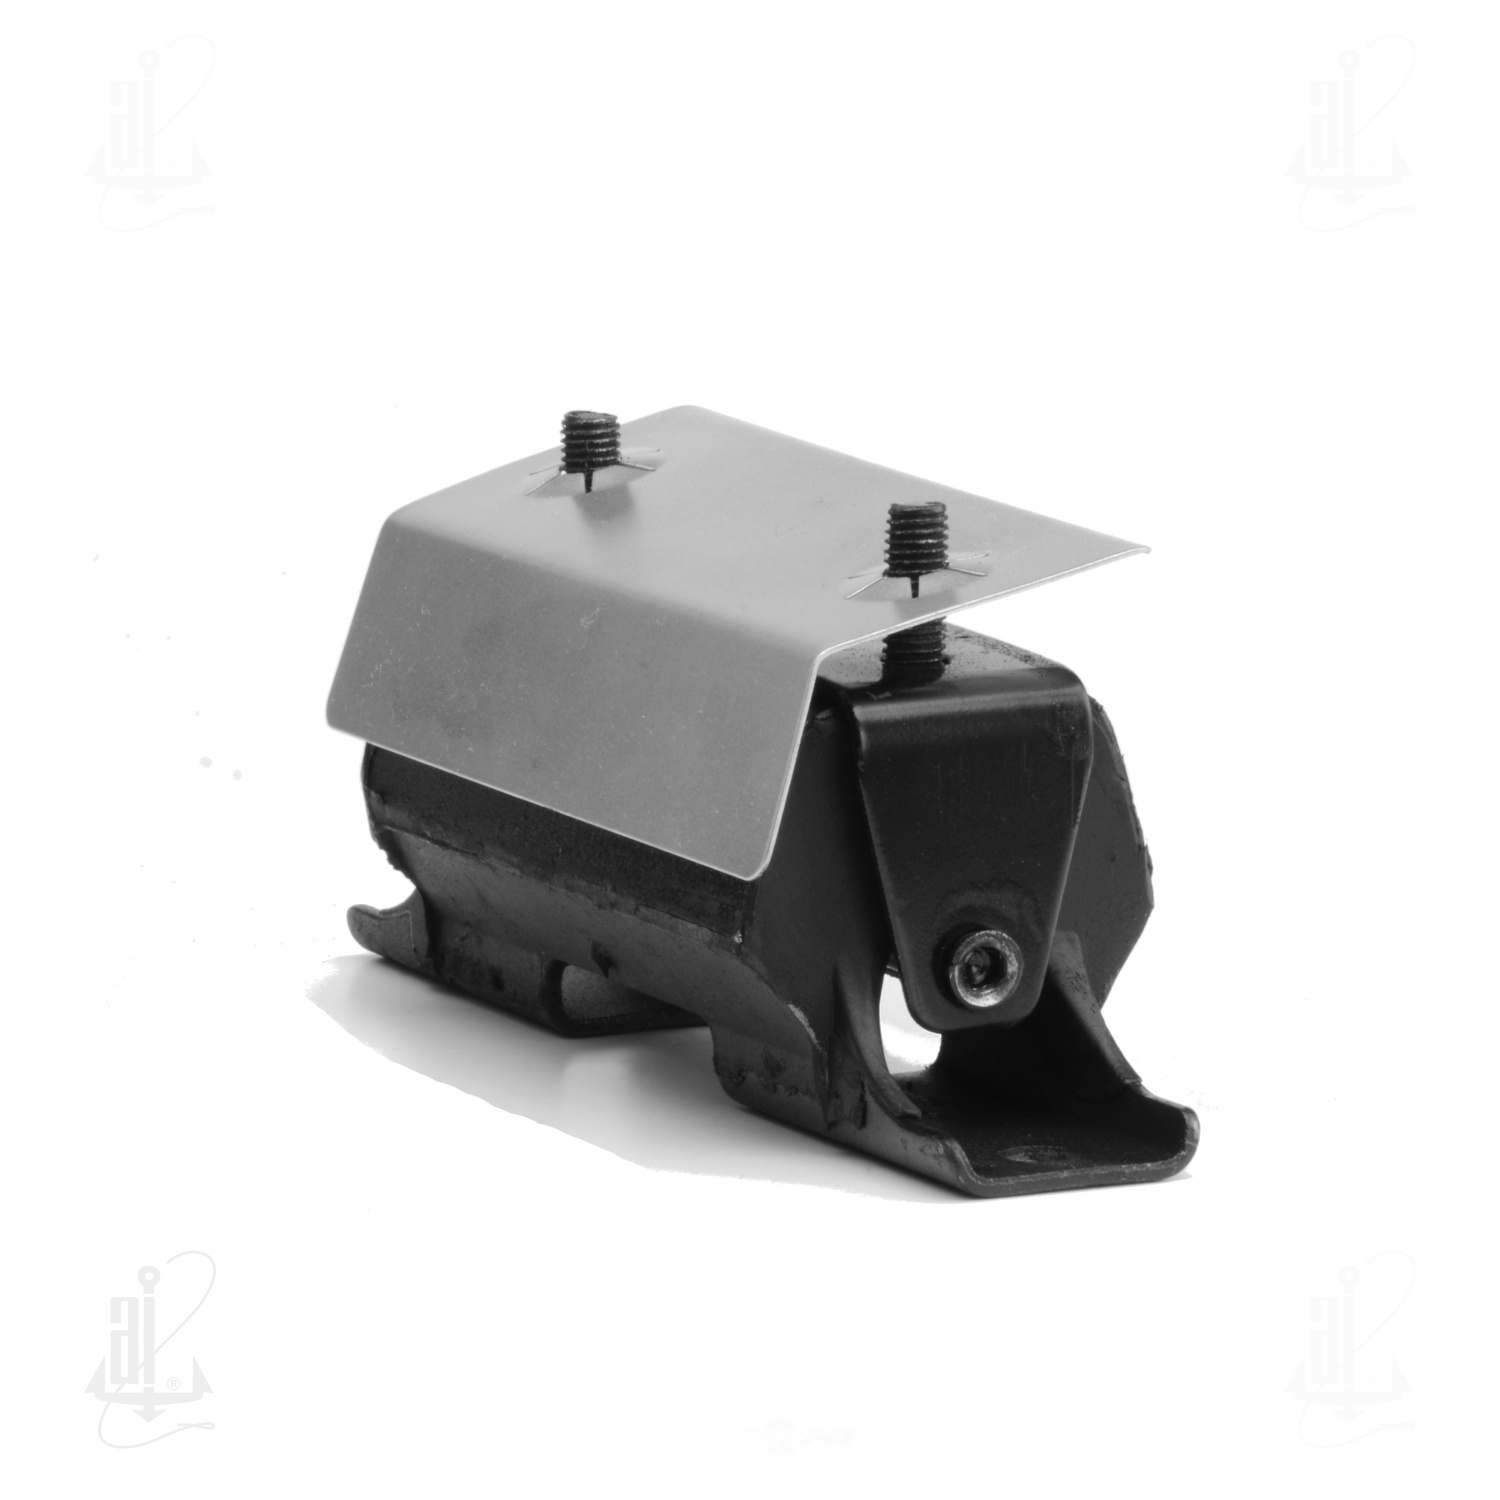 ANCHOR - Automatic Transmission Mount - ANH 3260